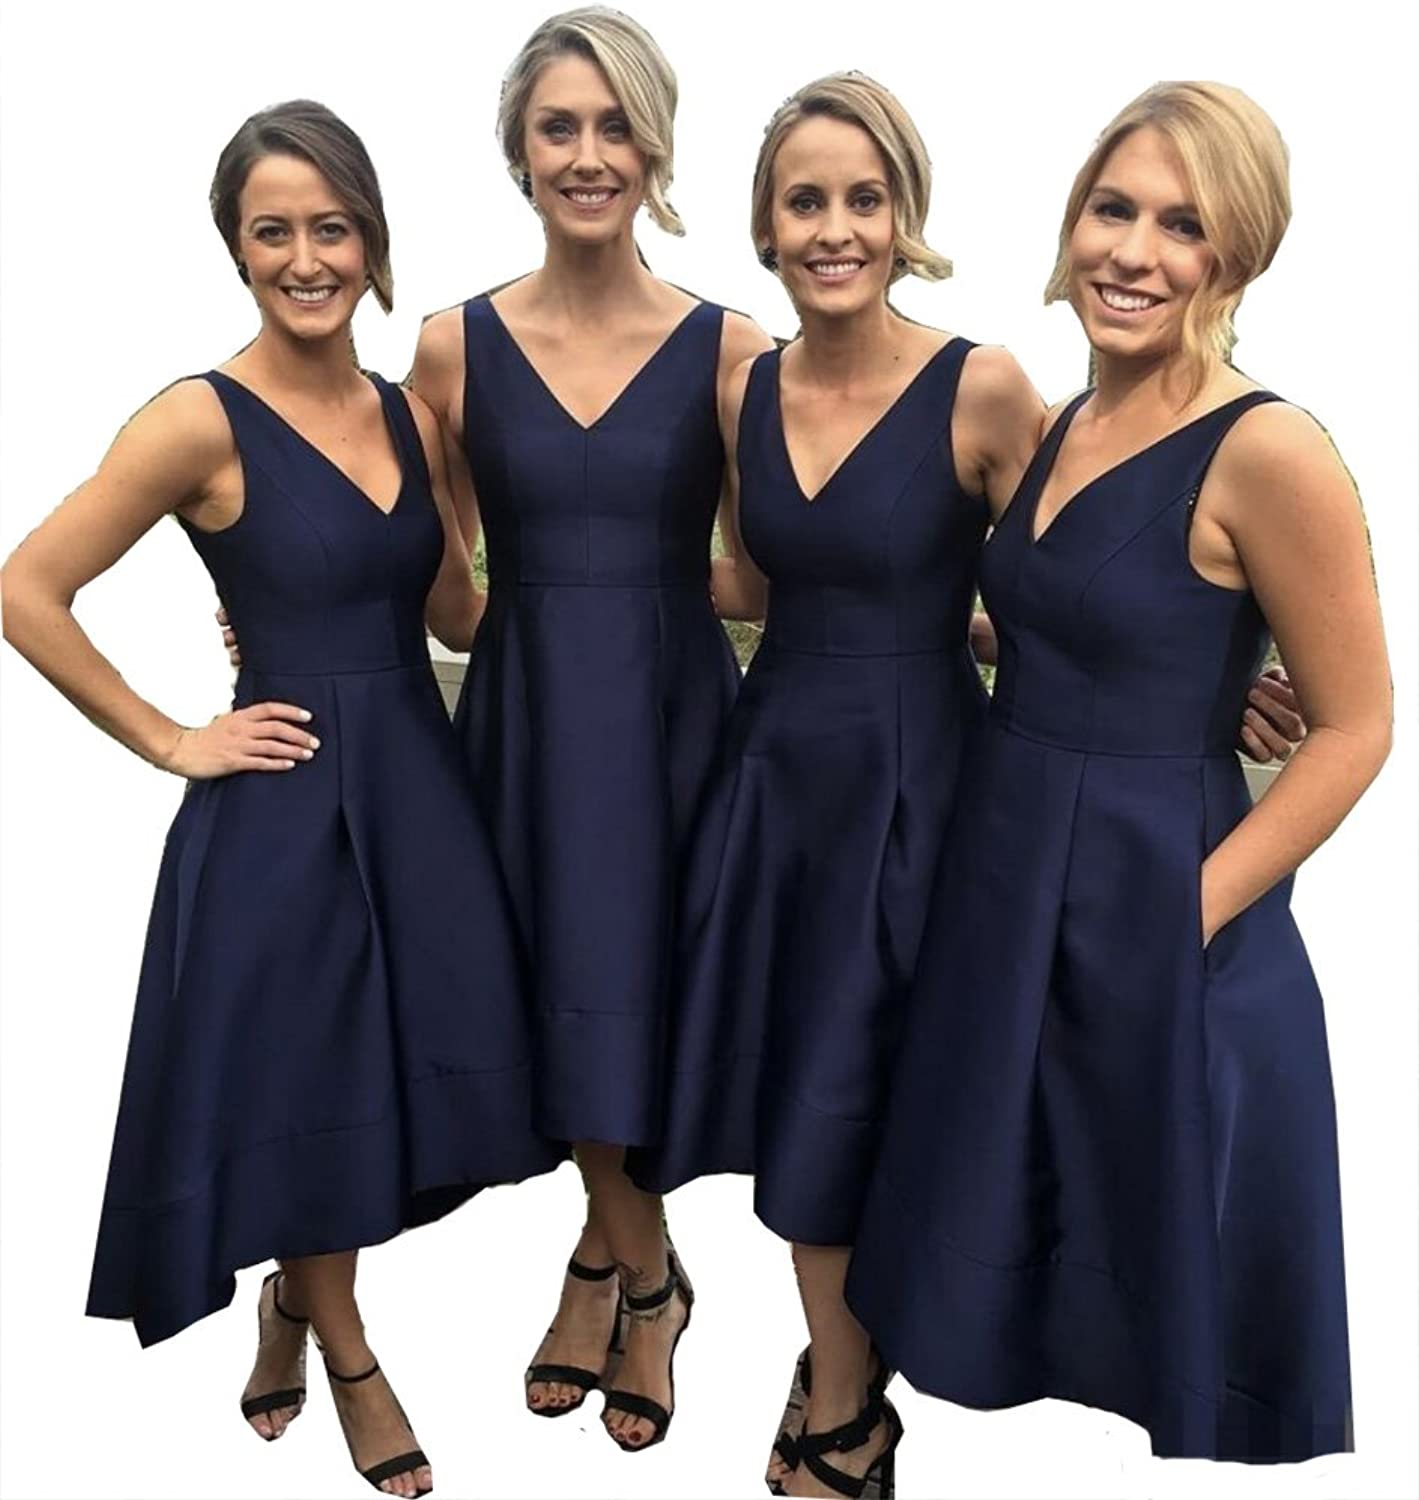 Fanciest Women's V Neck Satin Bridesmaid Dresses Short With Pockets Wedding Party Dress